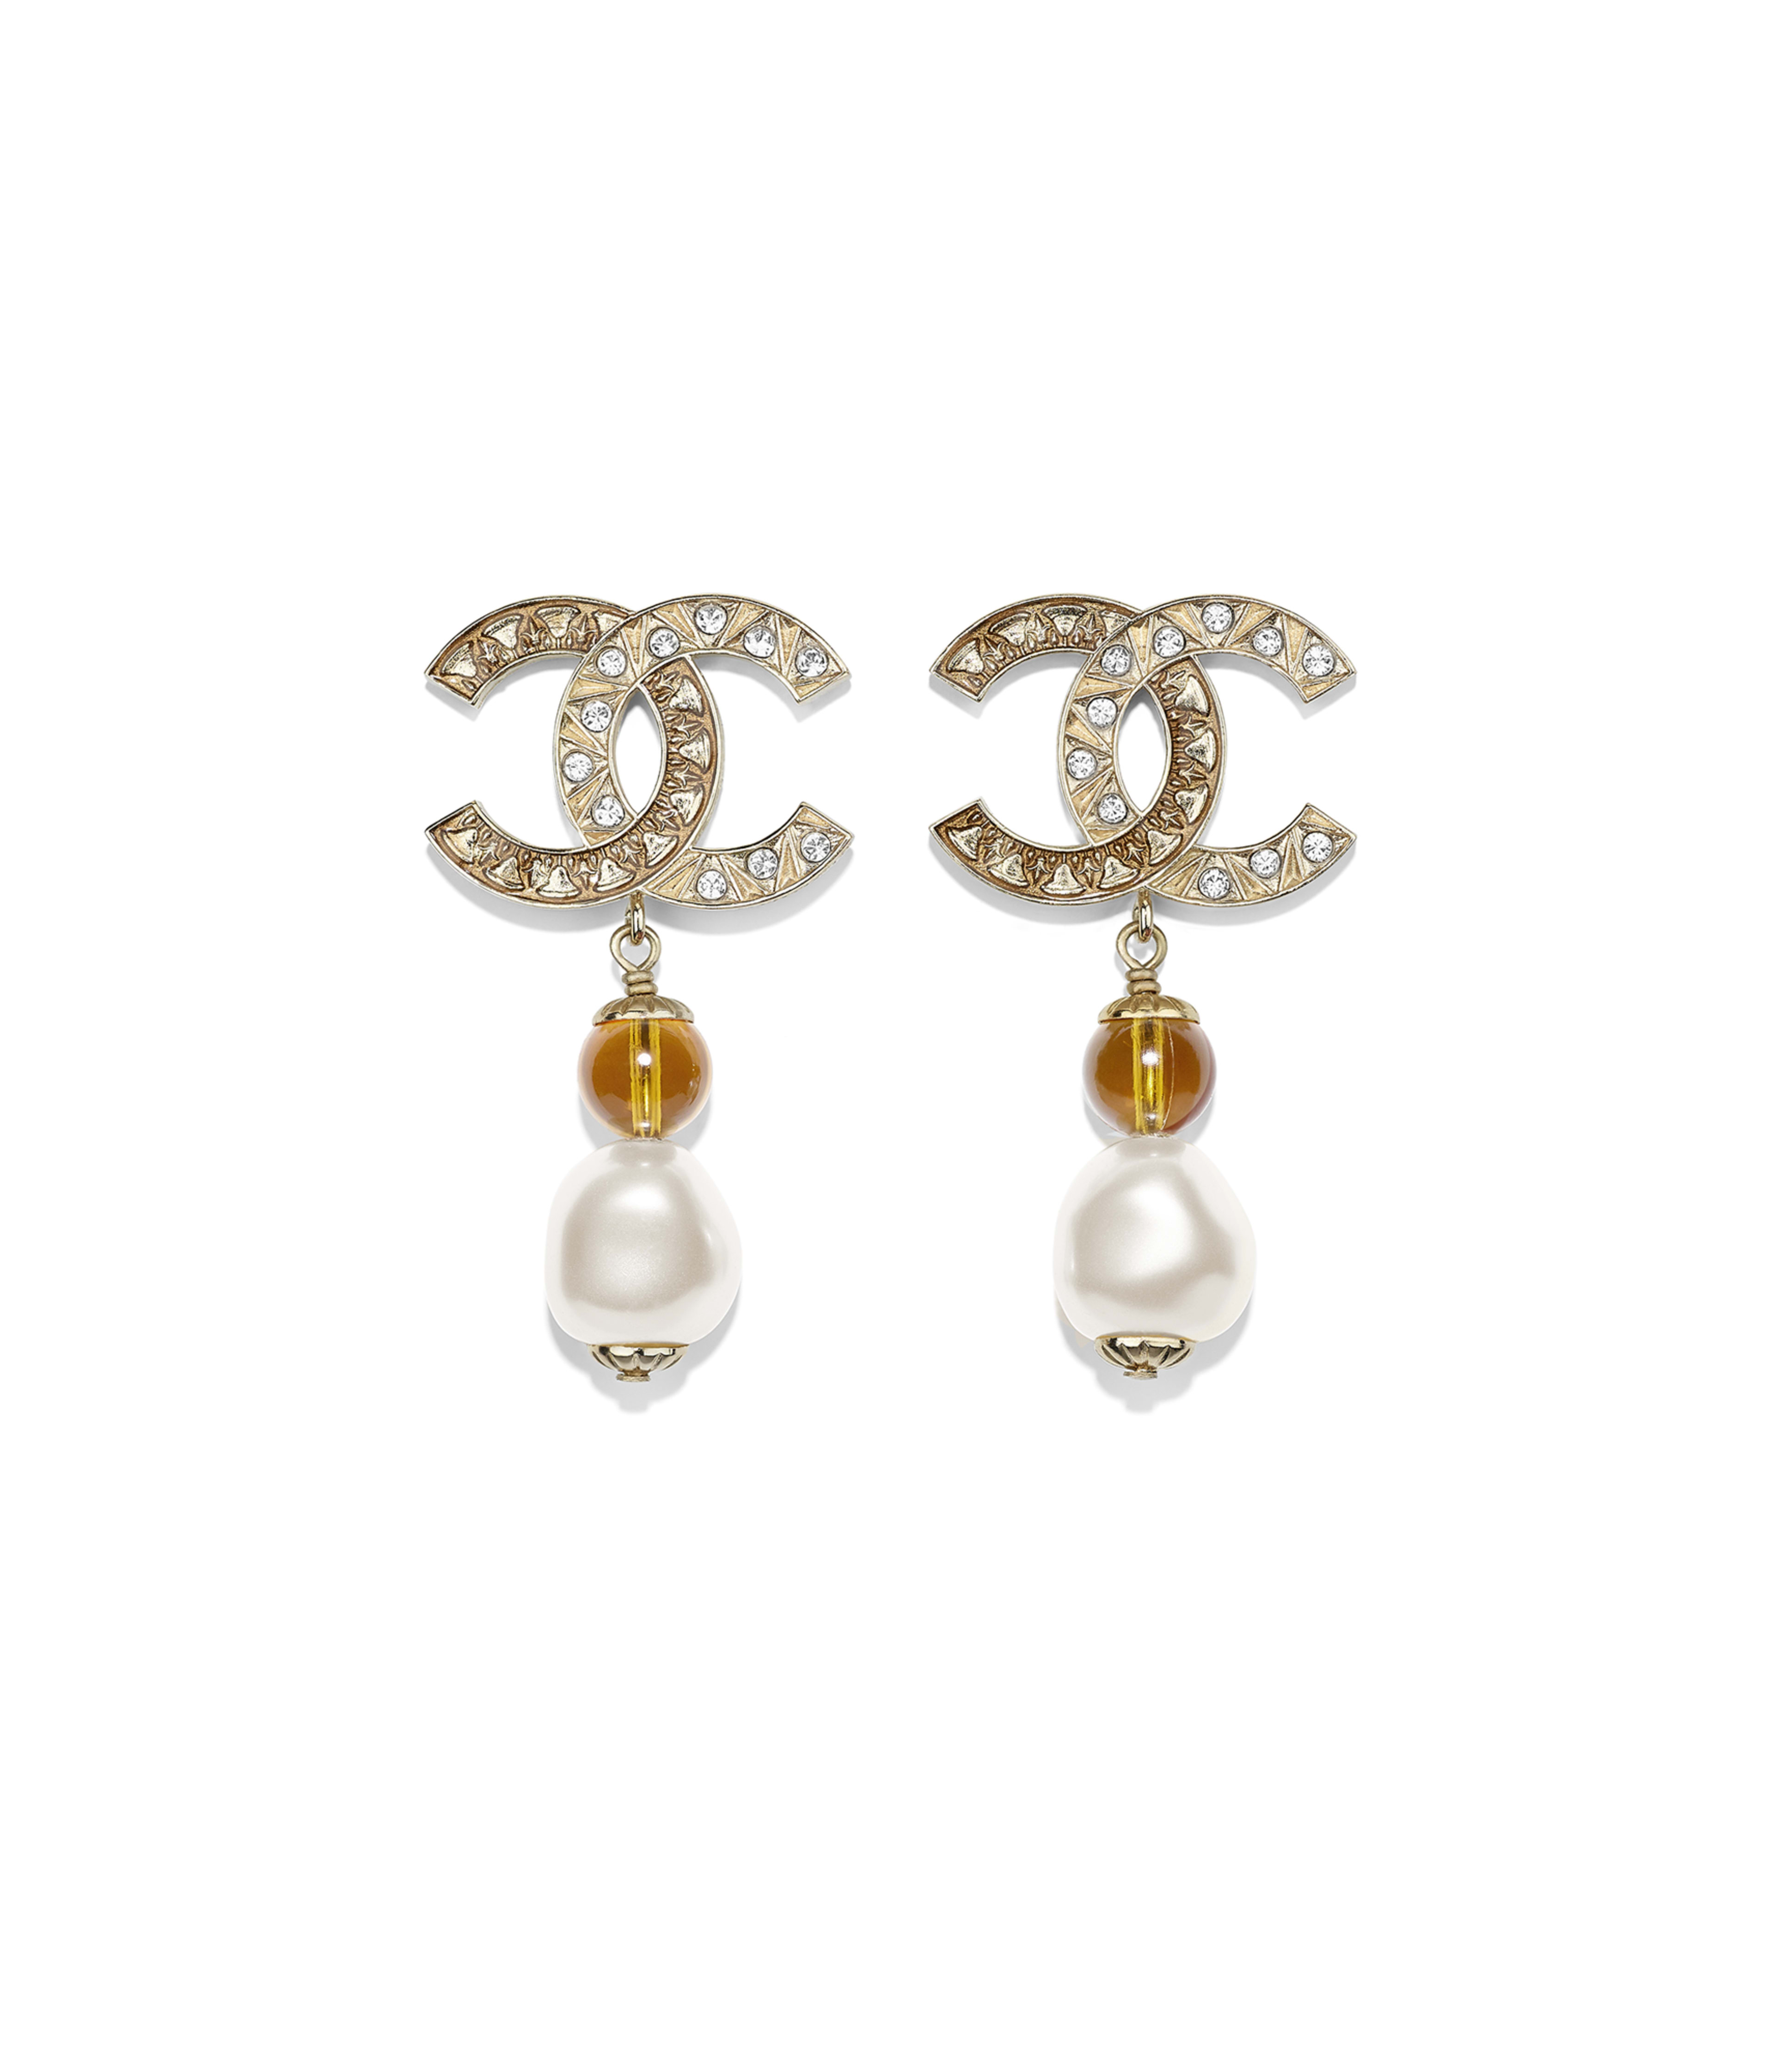 6d101b46e706a1 Earrings Metal, Glass Pearls, Imitation Pearls & Strass, Gold, Pearly  White, Orange & Crystal Ref. AB1493Y47719Z9144